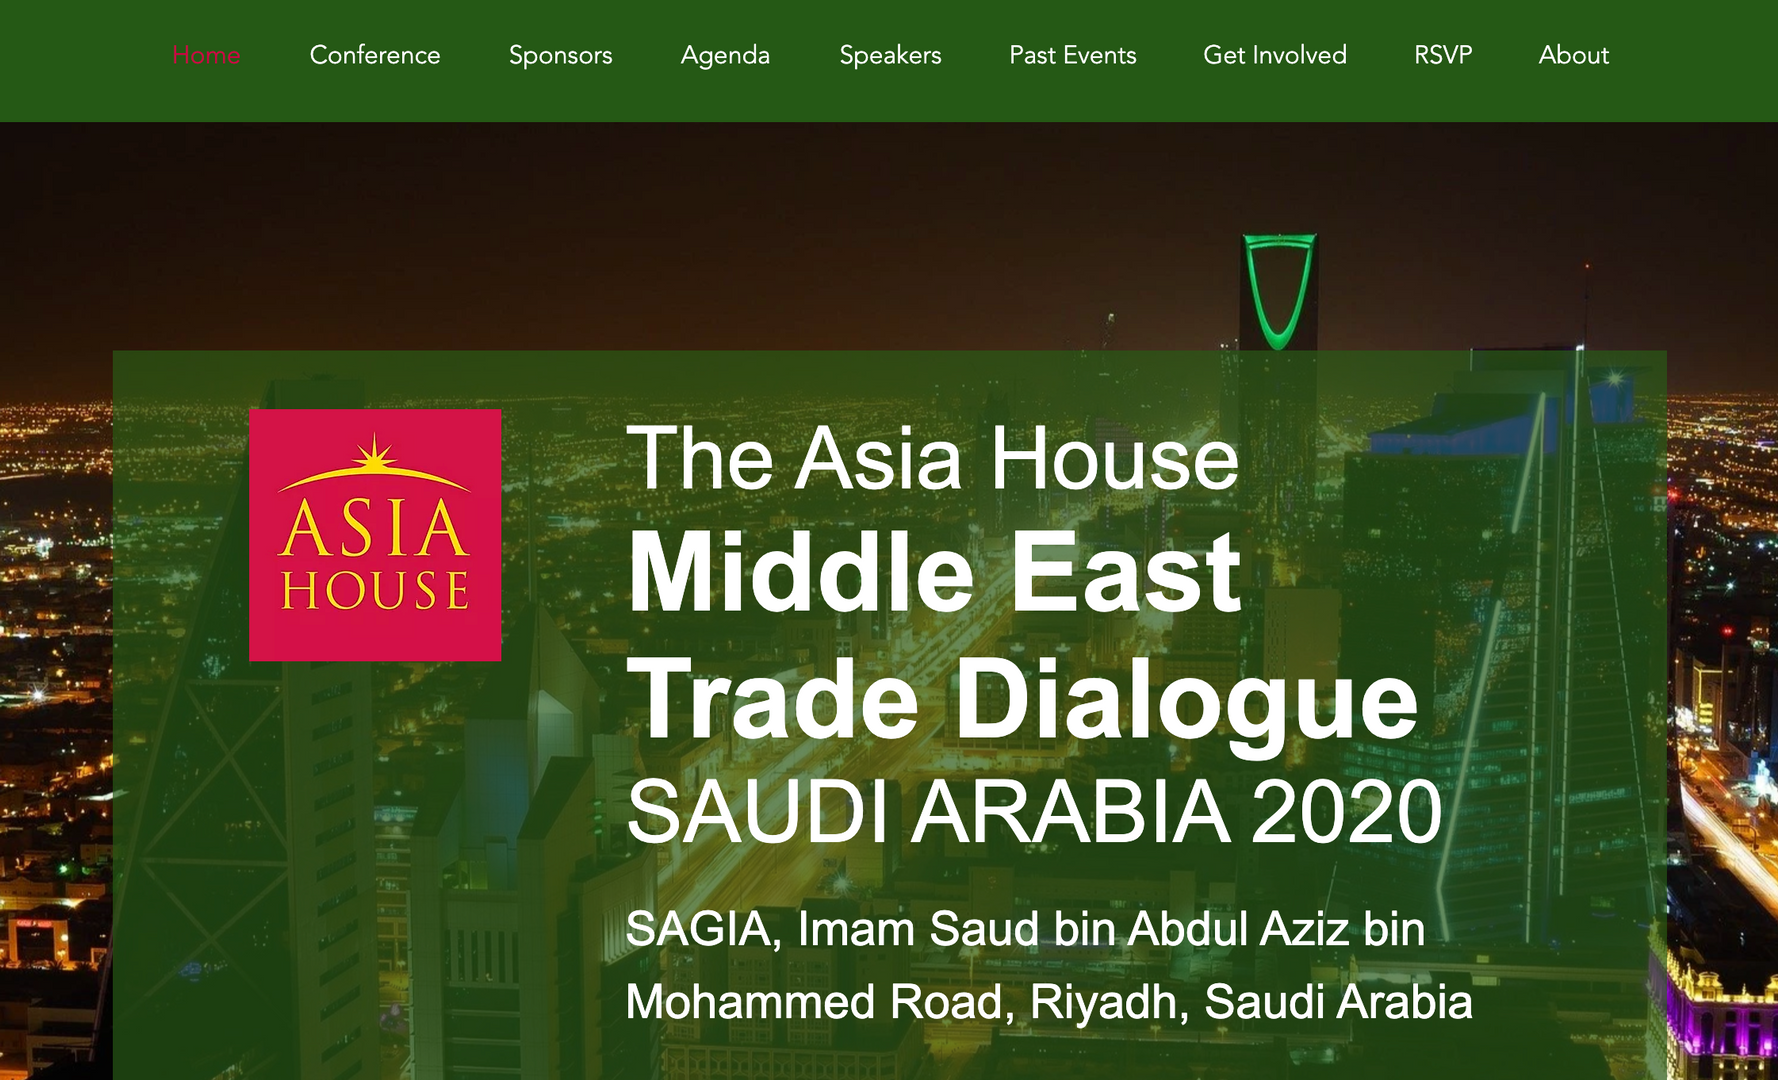 The Asia House Middle East Trade Dialogue